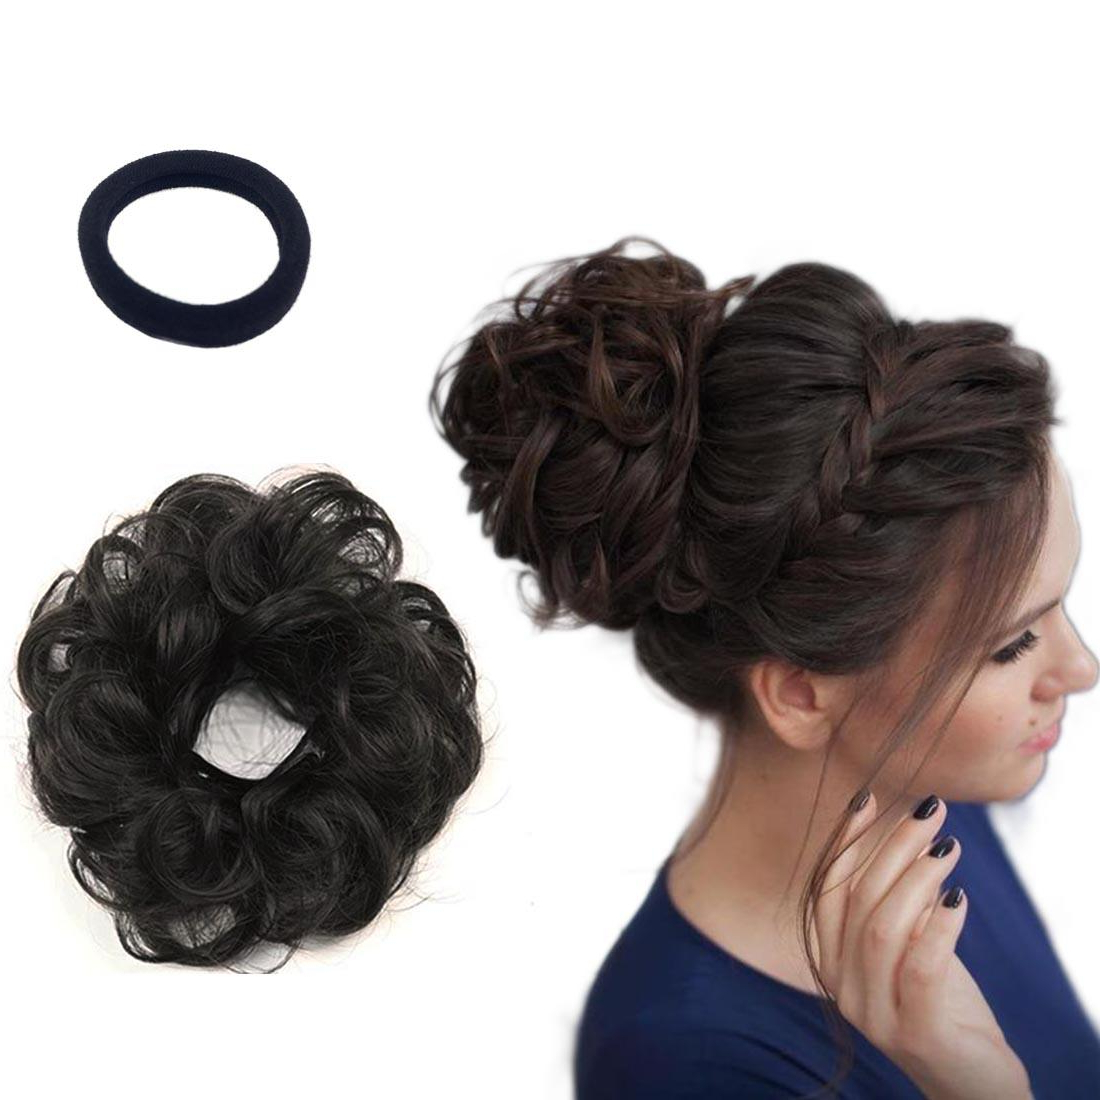 Hair Buns Real Human Hair Extensions For Women Wavy Curly Donut Hair Chignons Scrunchy Scrunchie Updo Hairpiece Perfect Messy Bun Side Swept Chignon Pertaining To Most Recently Released Messy Updo Hairstyles With Free Curly Ends (View 14 of 20)